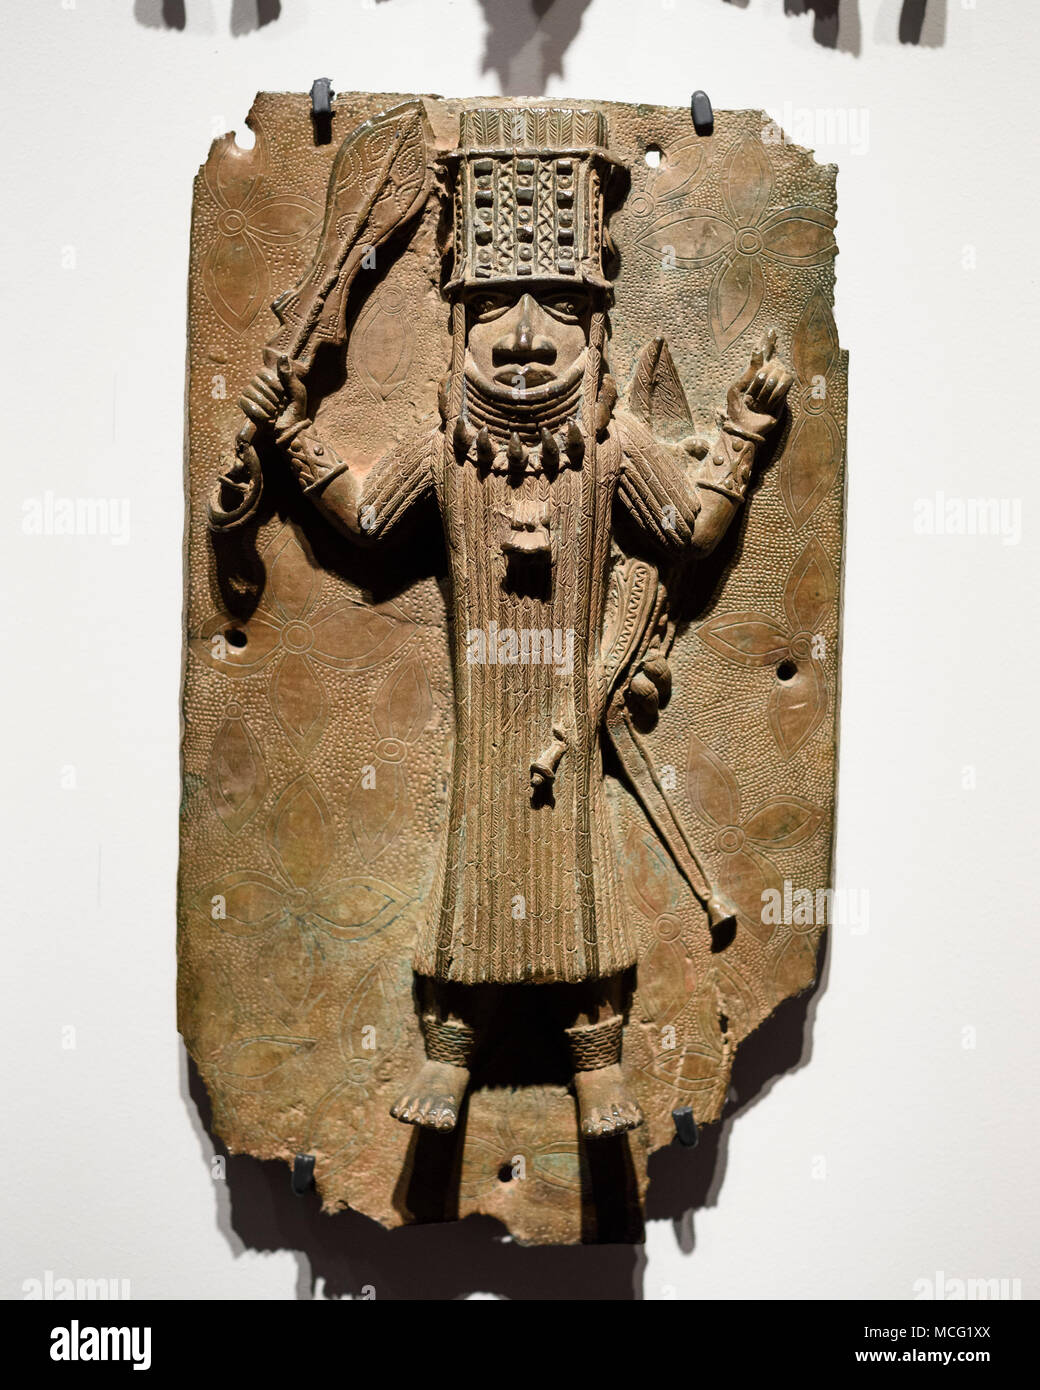 Berlin. Germany. Benin Bronzes. Oba / King (Ozolua?), 16-17th century, brass plaque. From the royal court palace of the Kingdom of Benin. Ethnological - Stock Image